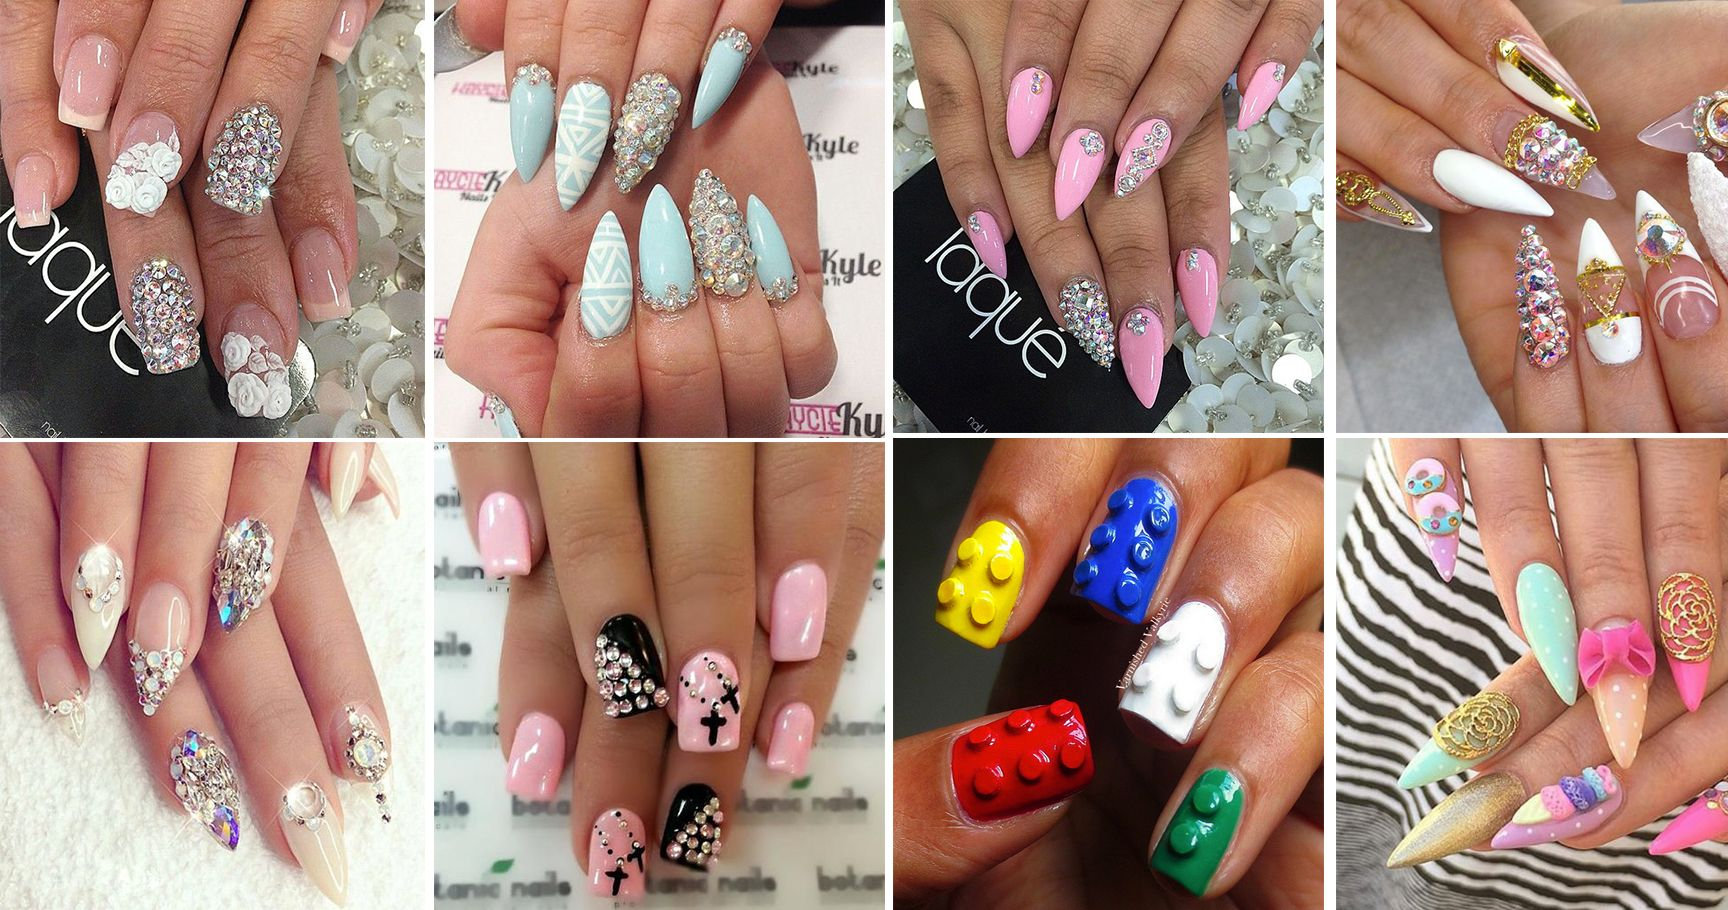 12 Nail Designs That Have Totally Gone 3D